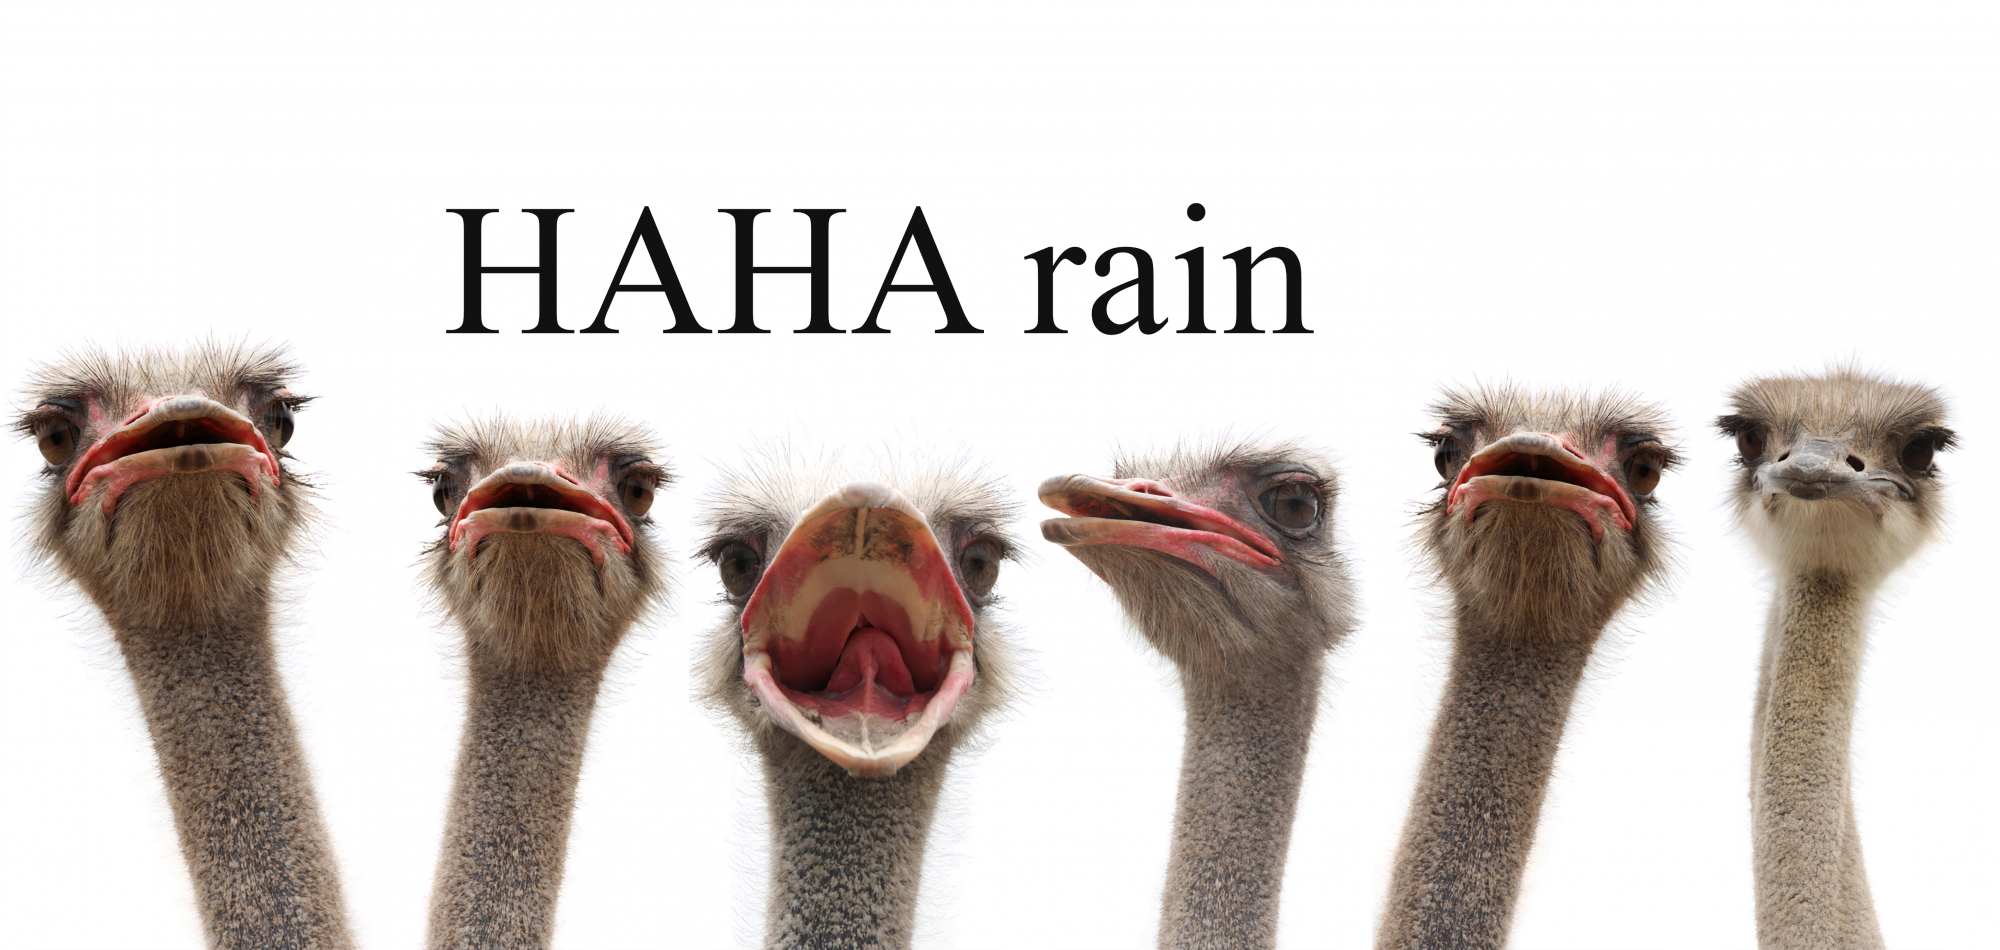 HAHA rain - Books for kids who don't like to read